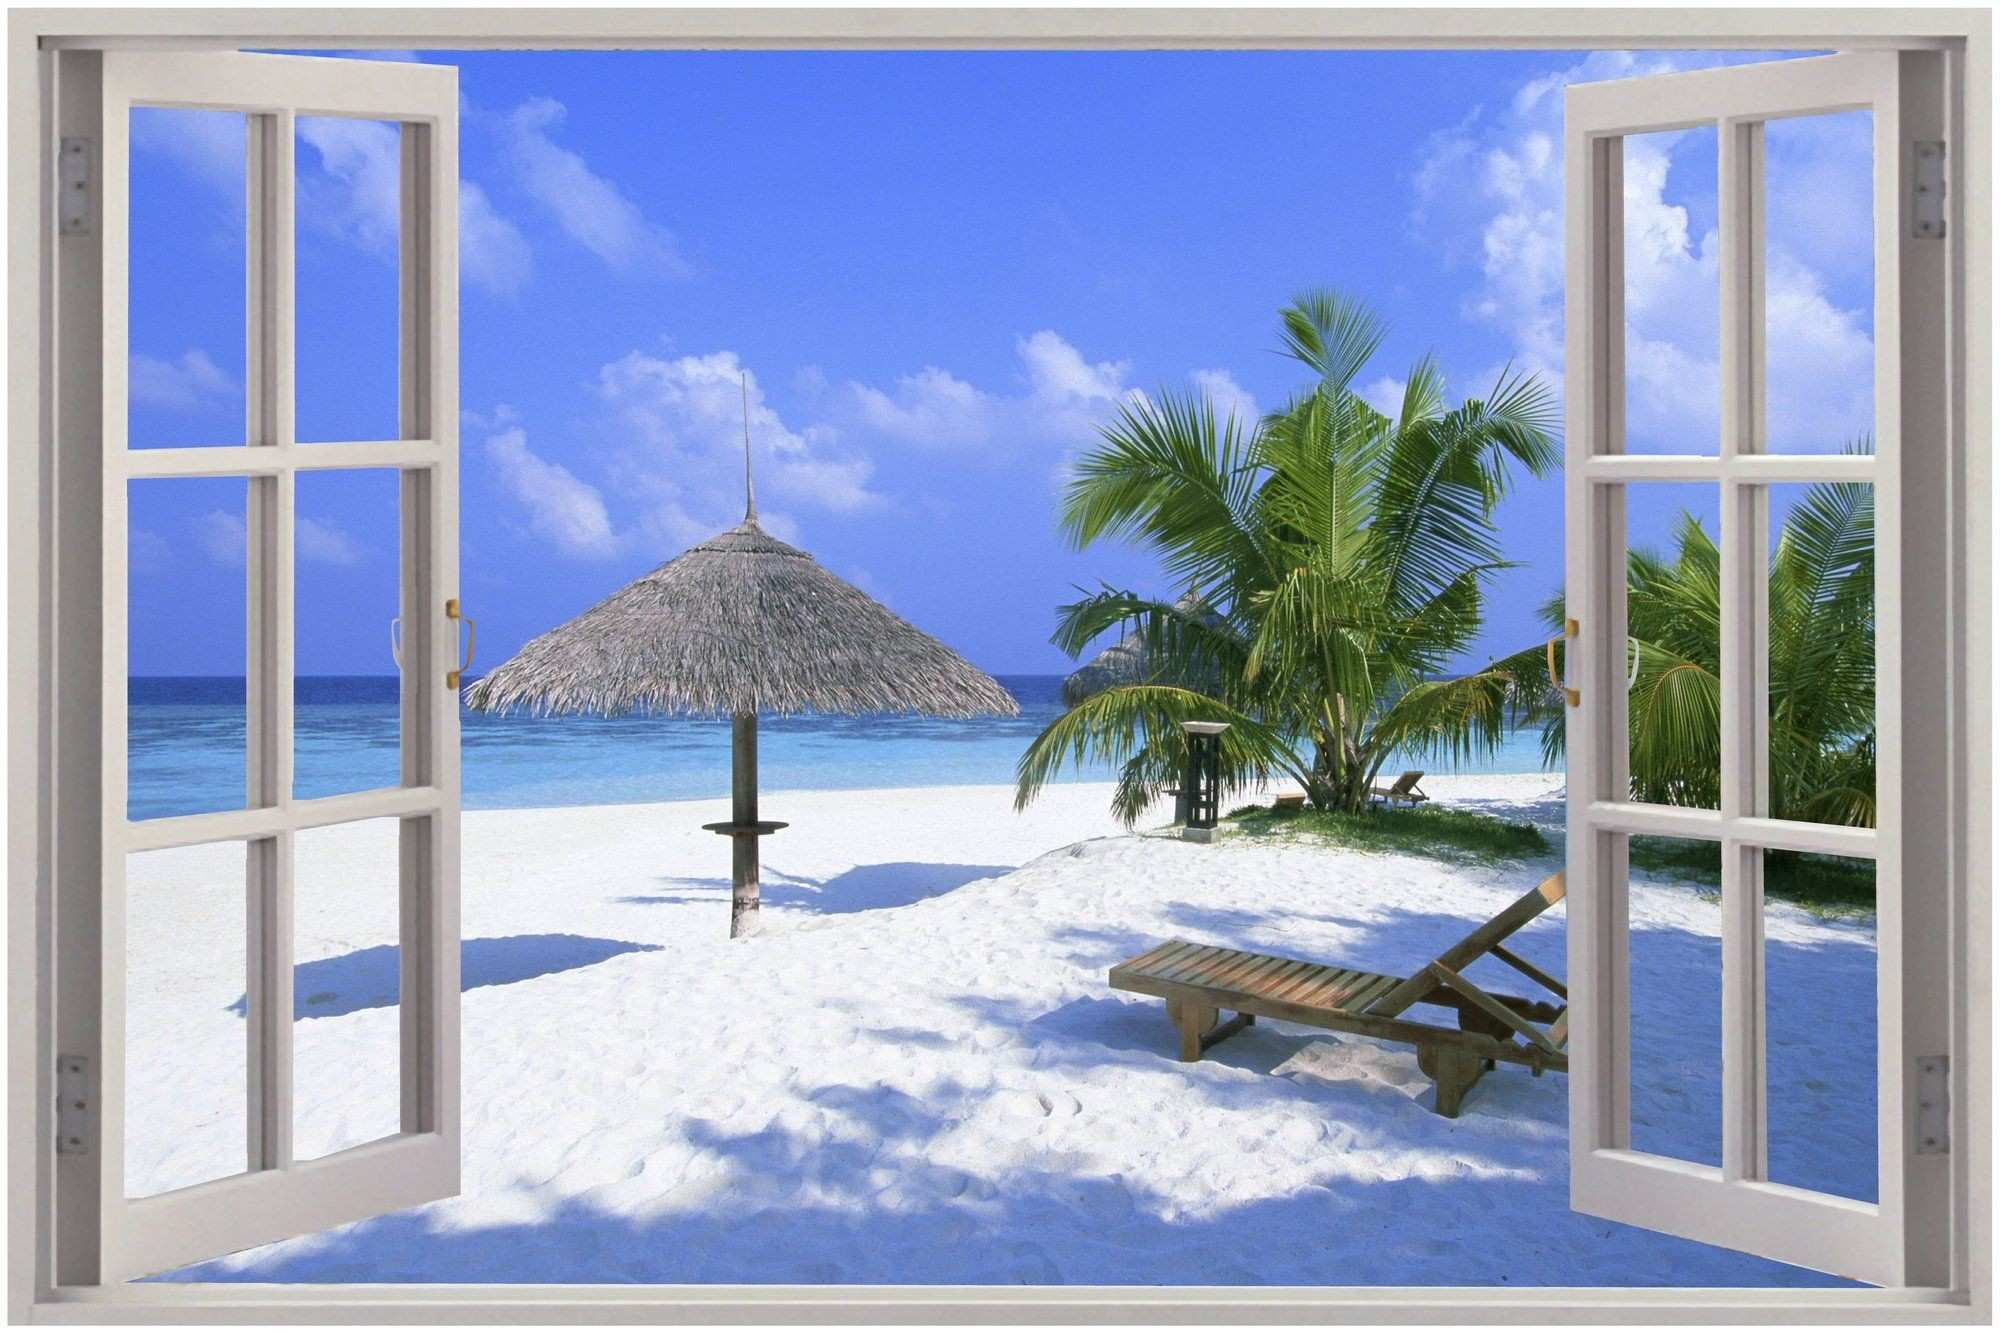 Image Result for Adirondack Chairs A Beach Design Ideas Window